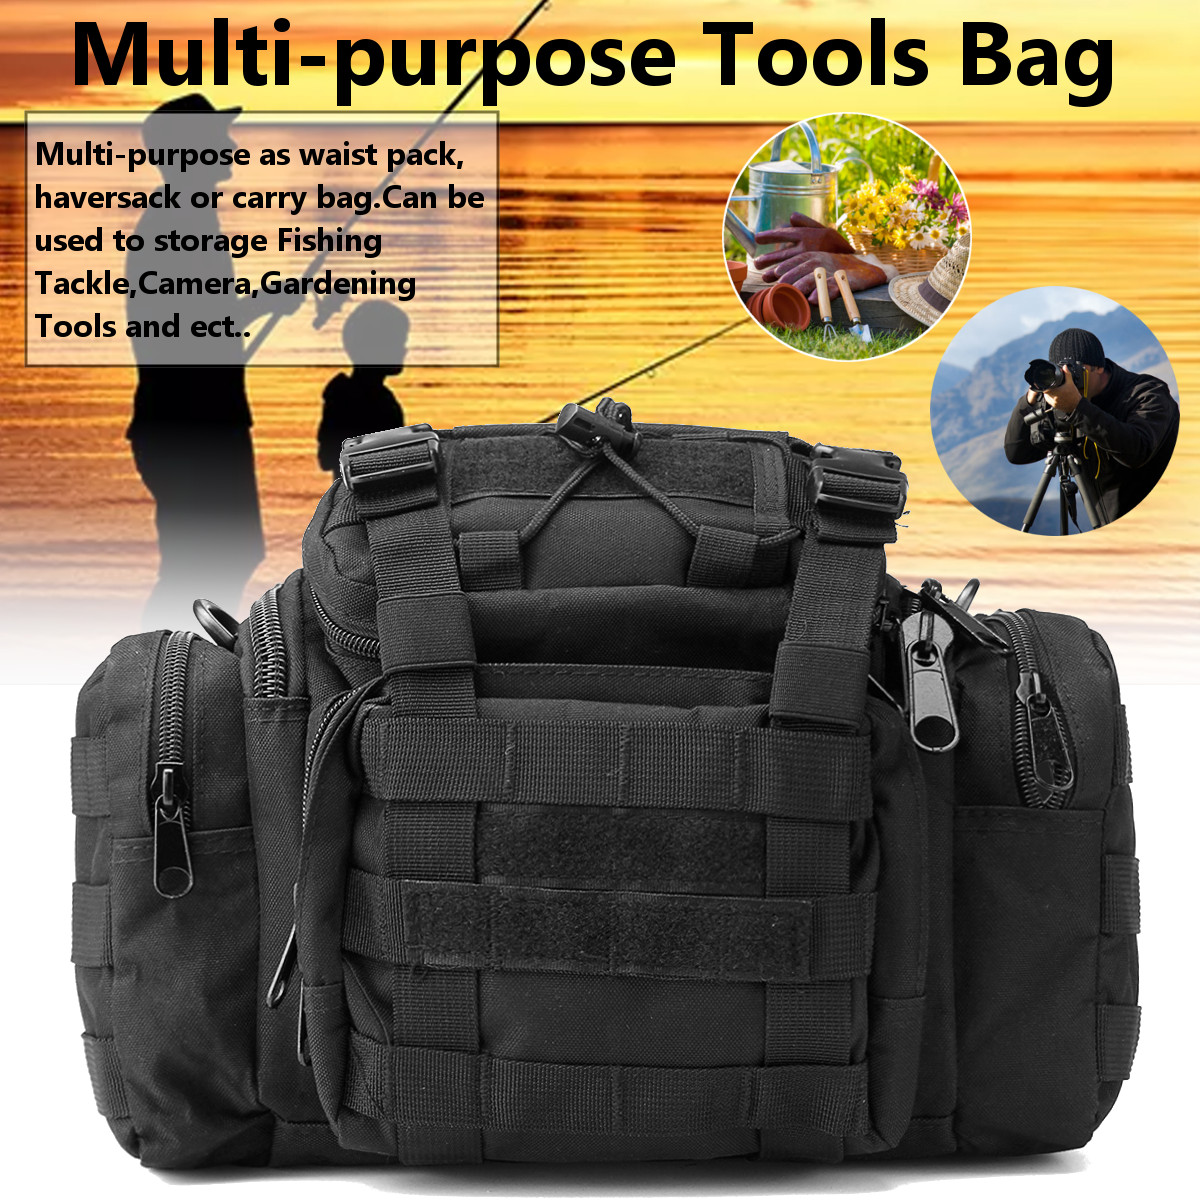 Multi-purpose Tool Bag Fishing Tackle Bag Gardening Tools Storage Pouch Waist Shoulder Pack